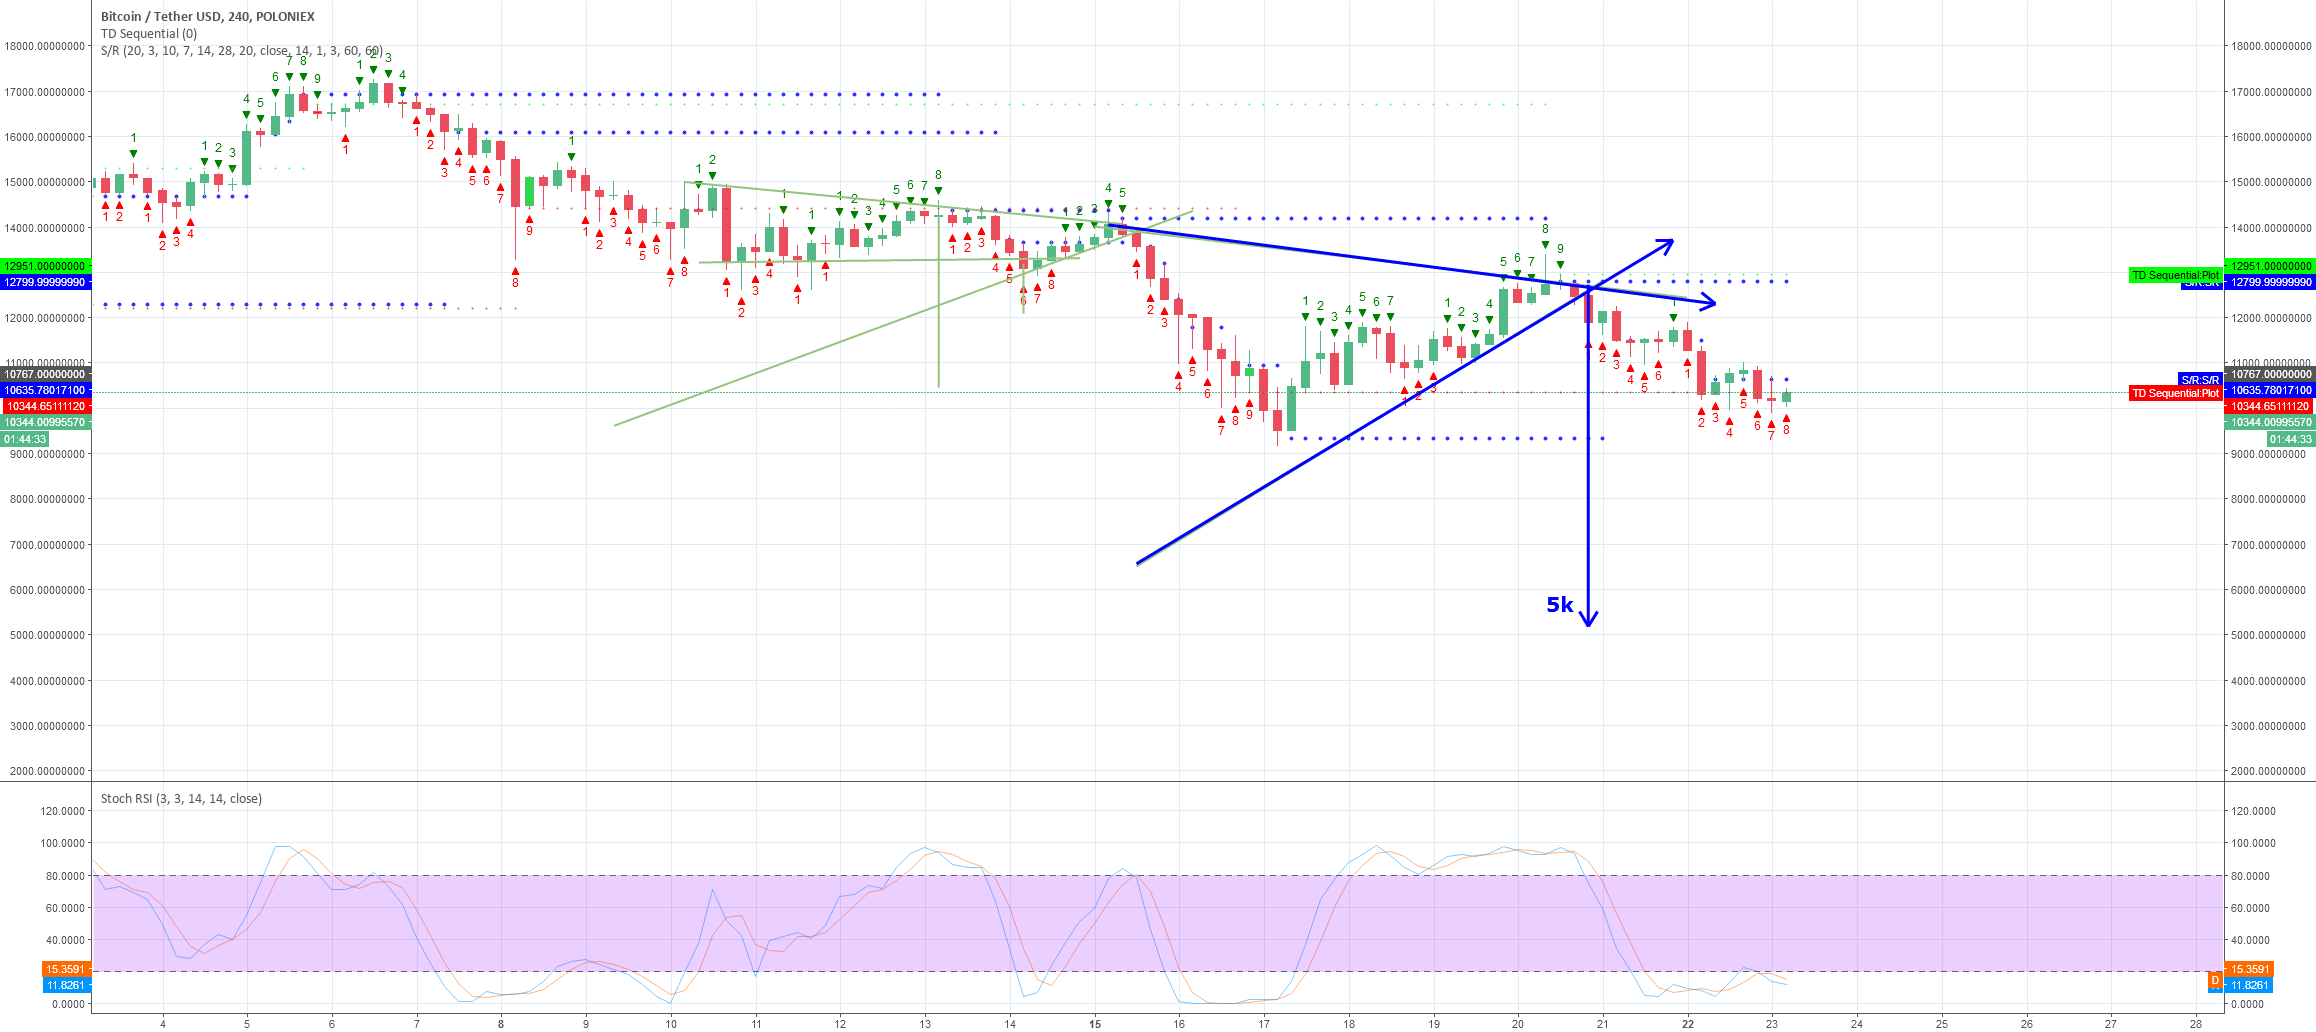 At some point during the correction we will hit 5k